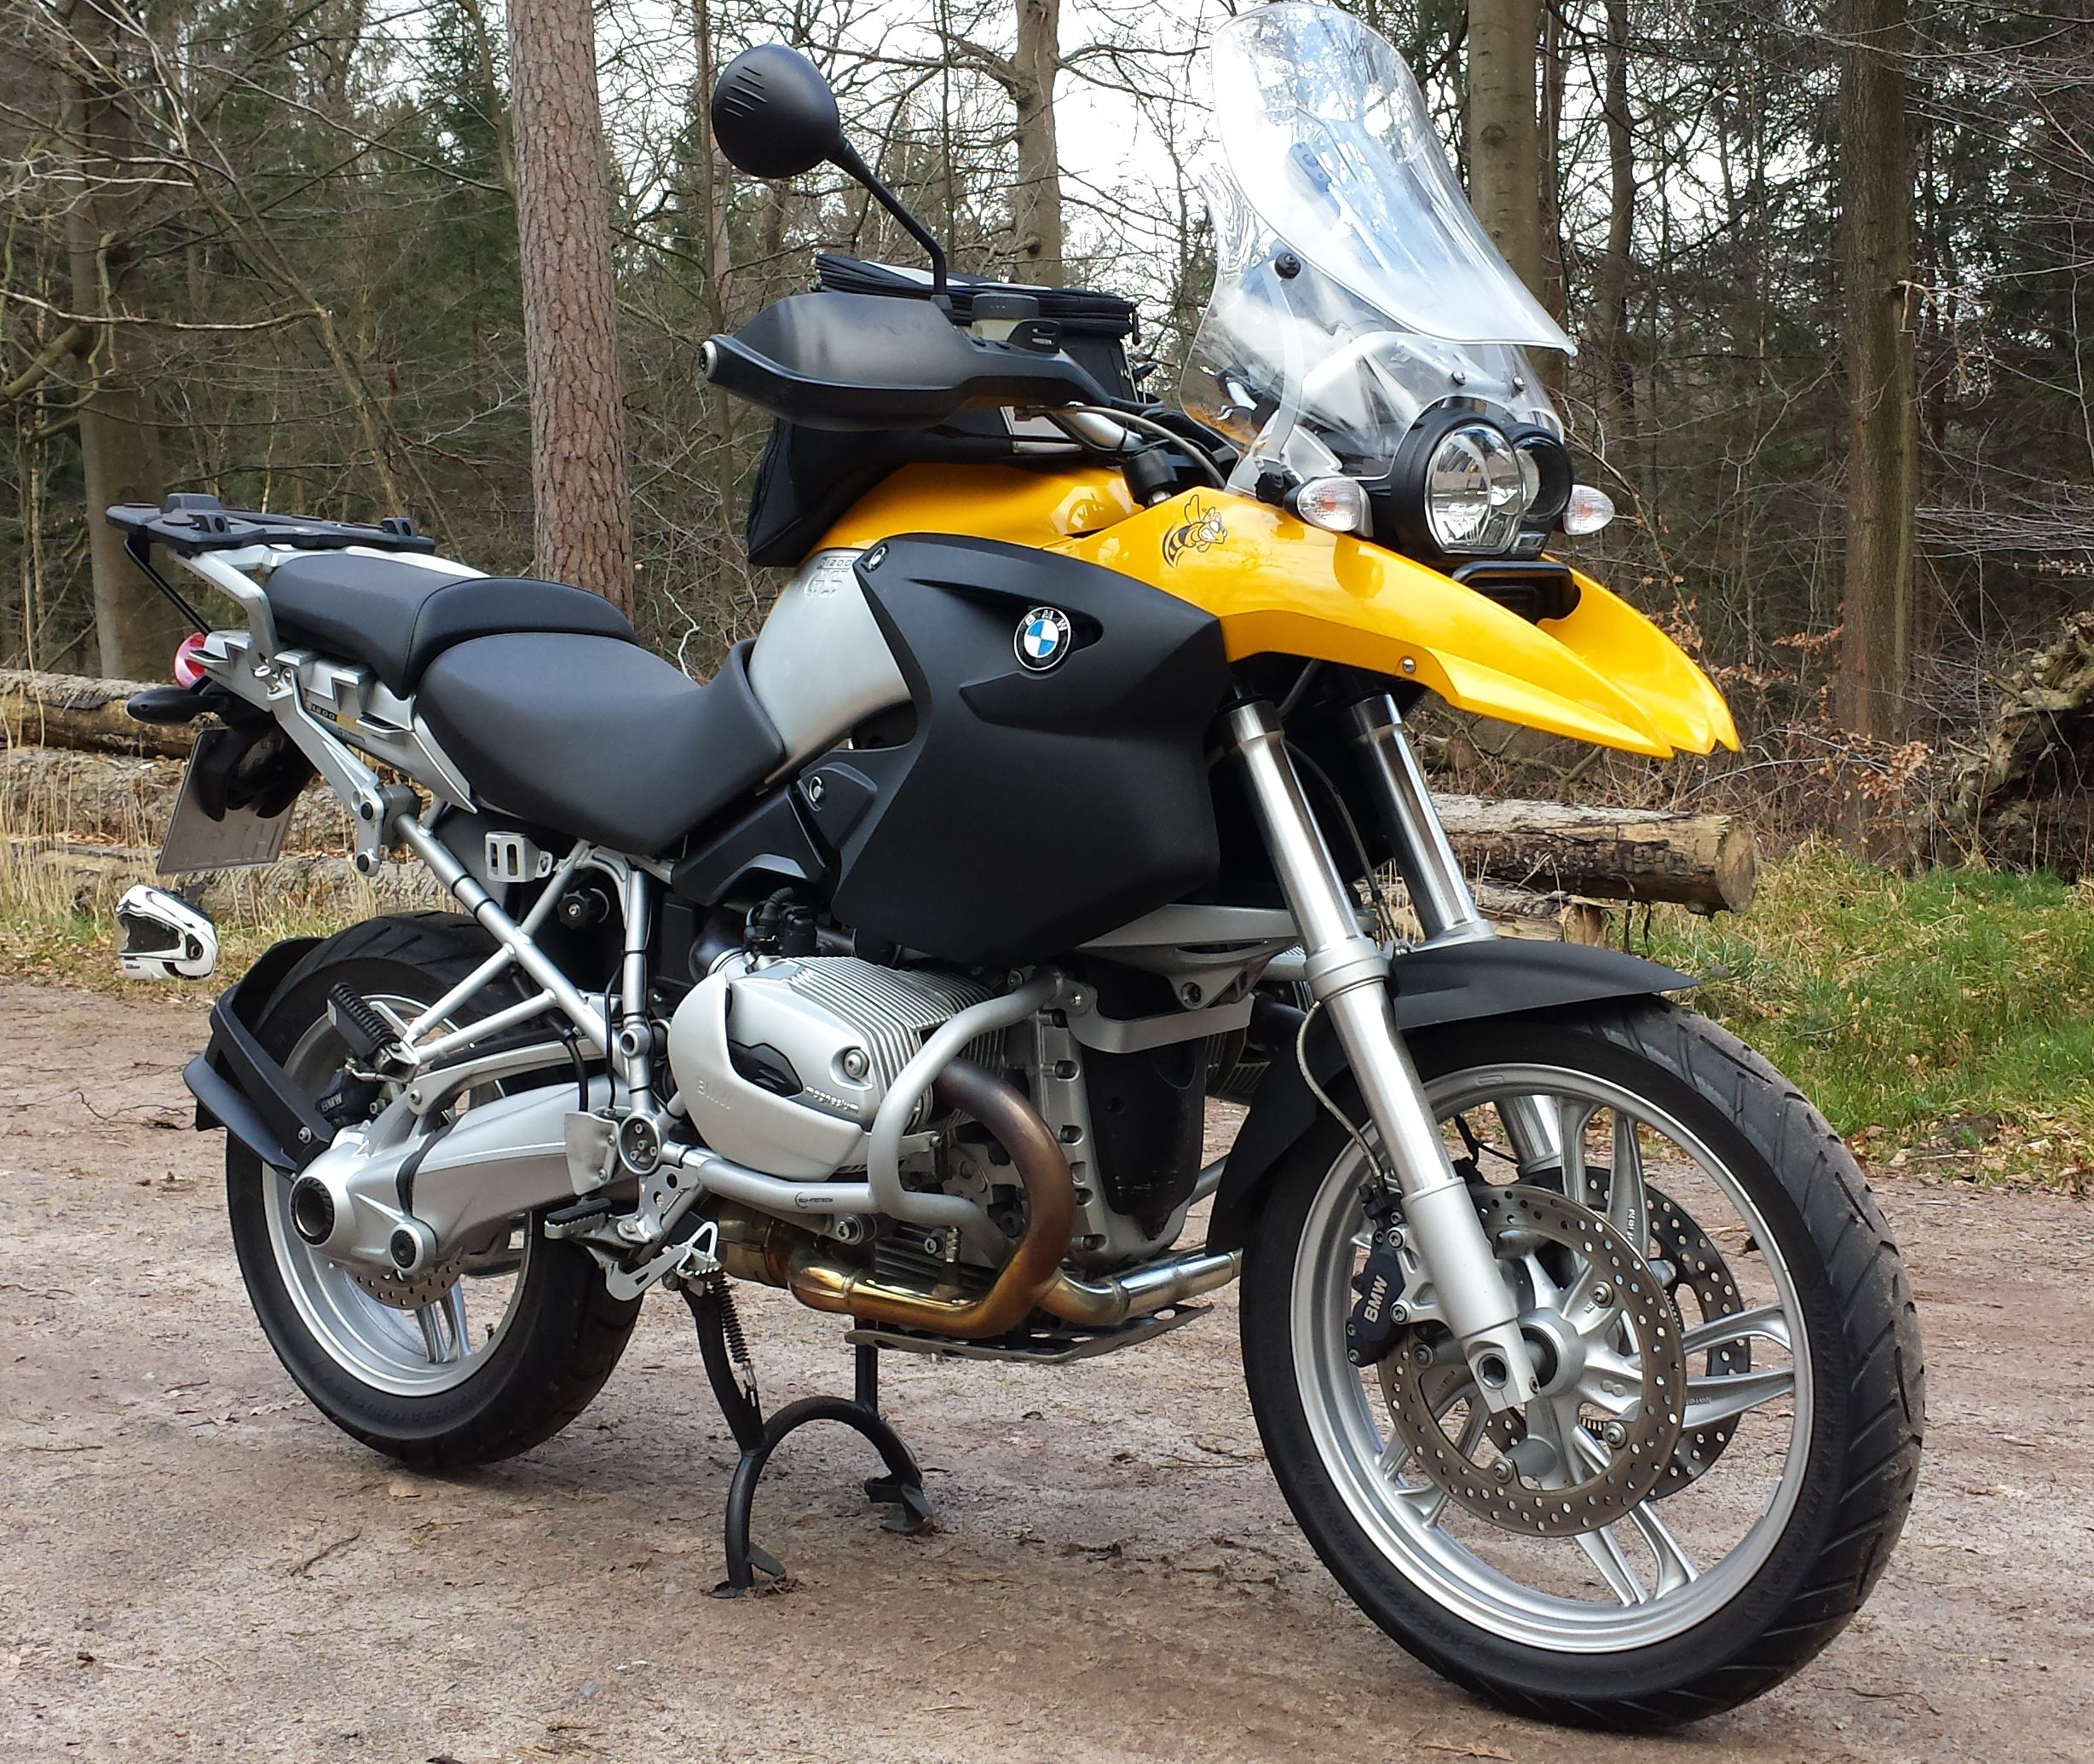 biete r 1200 gs adventure sturzb gel bmw r 1200 gs r12. Black Bedroom Furniture Sets. Home Design Ideas